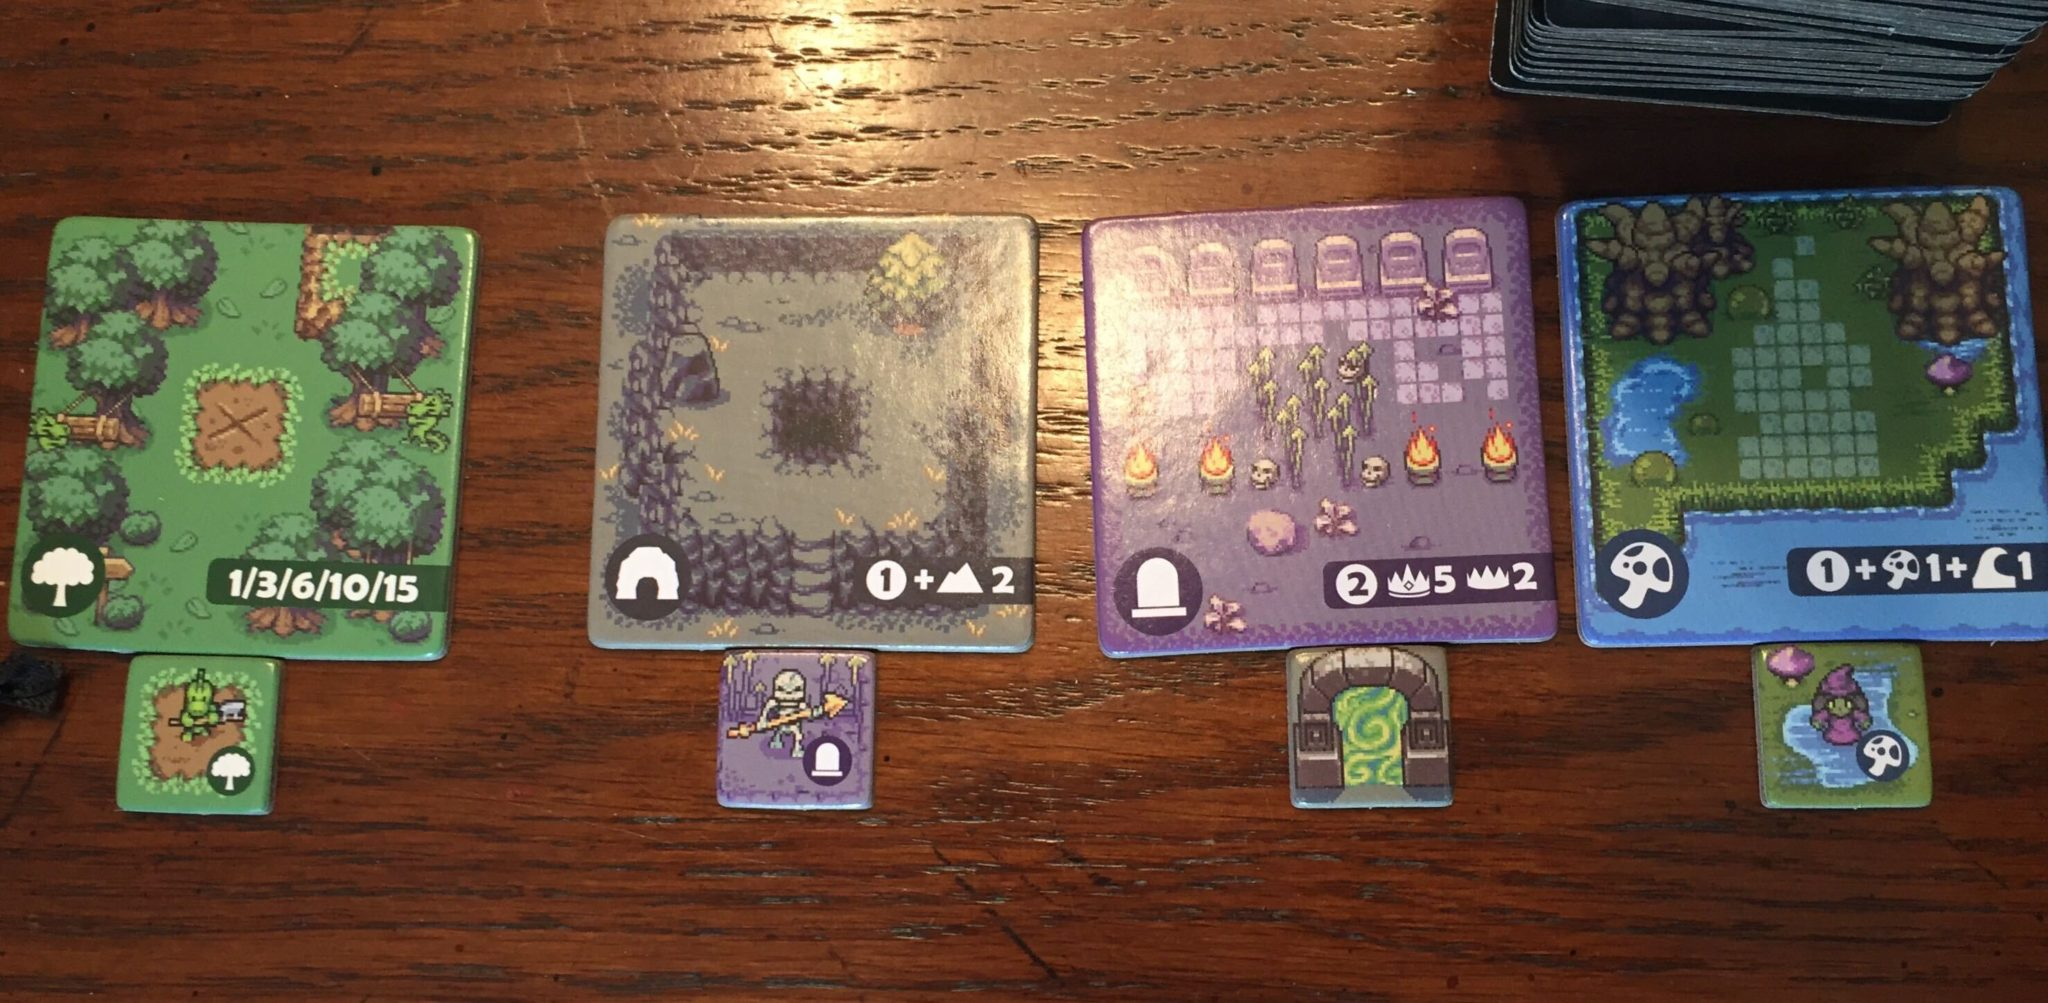 The Overboss market is shown with four tiles, and four monsters underneath them. The Tiles are Forest, Cave, Graveyard, and Swamp, and the tiles underneath are kobold, skeleton, Portal, and witch.